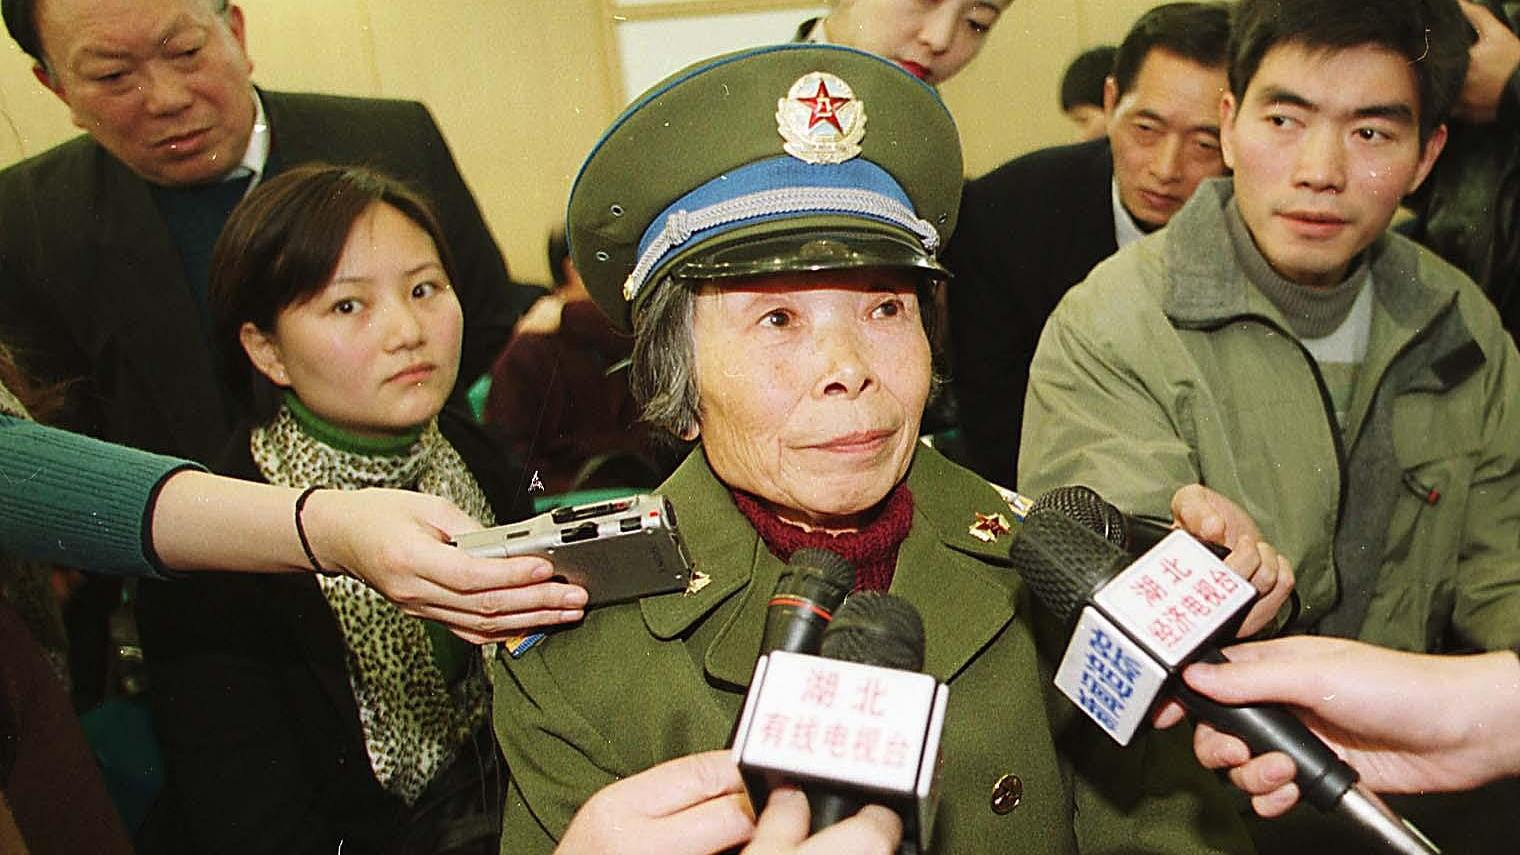 China's first female paratrooper, 83, donates life savings to hometown